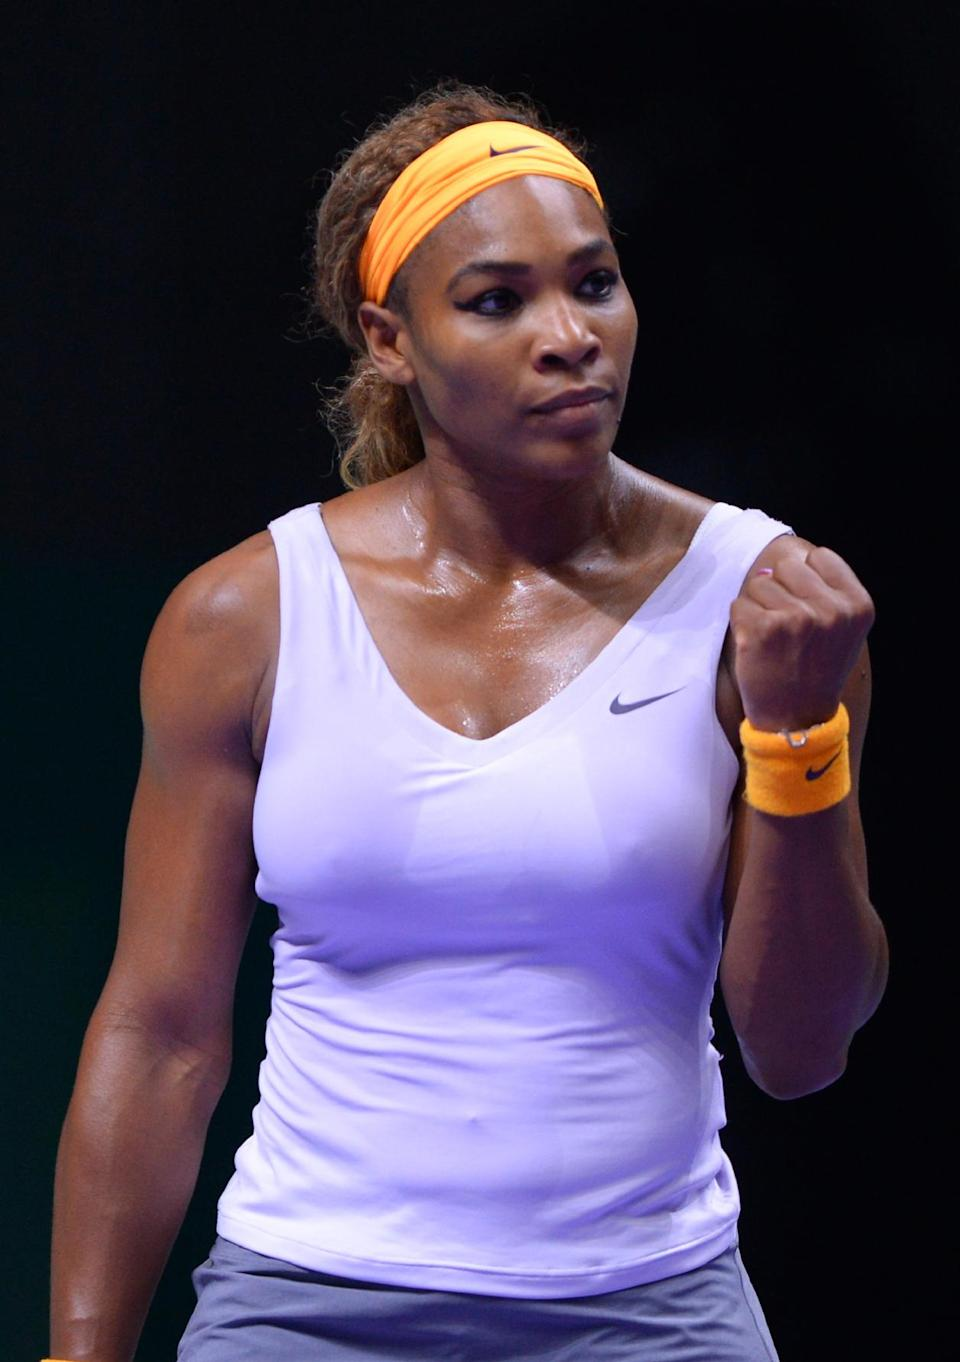 Serena Williams of the U.S reacts after she returned a shot to Li Na of China during their final tennis match at the WTA Championship in Istanbul, Turkey, Sunday, Oct. 27, 2013. The world's top female tennis players compete in the championships which runs from Oct. 22 until Oct. 27.(AP Photo)